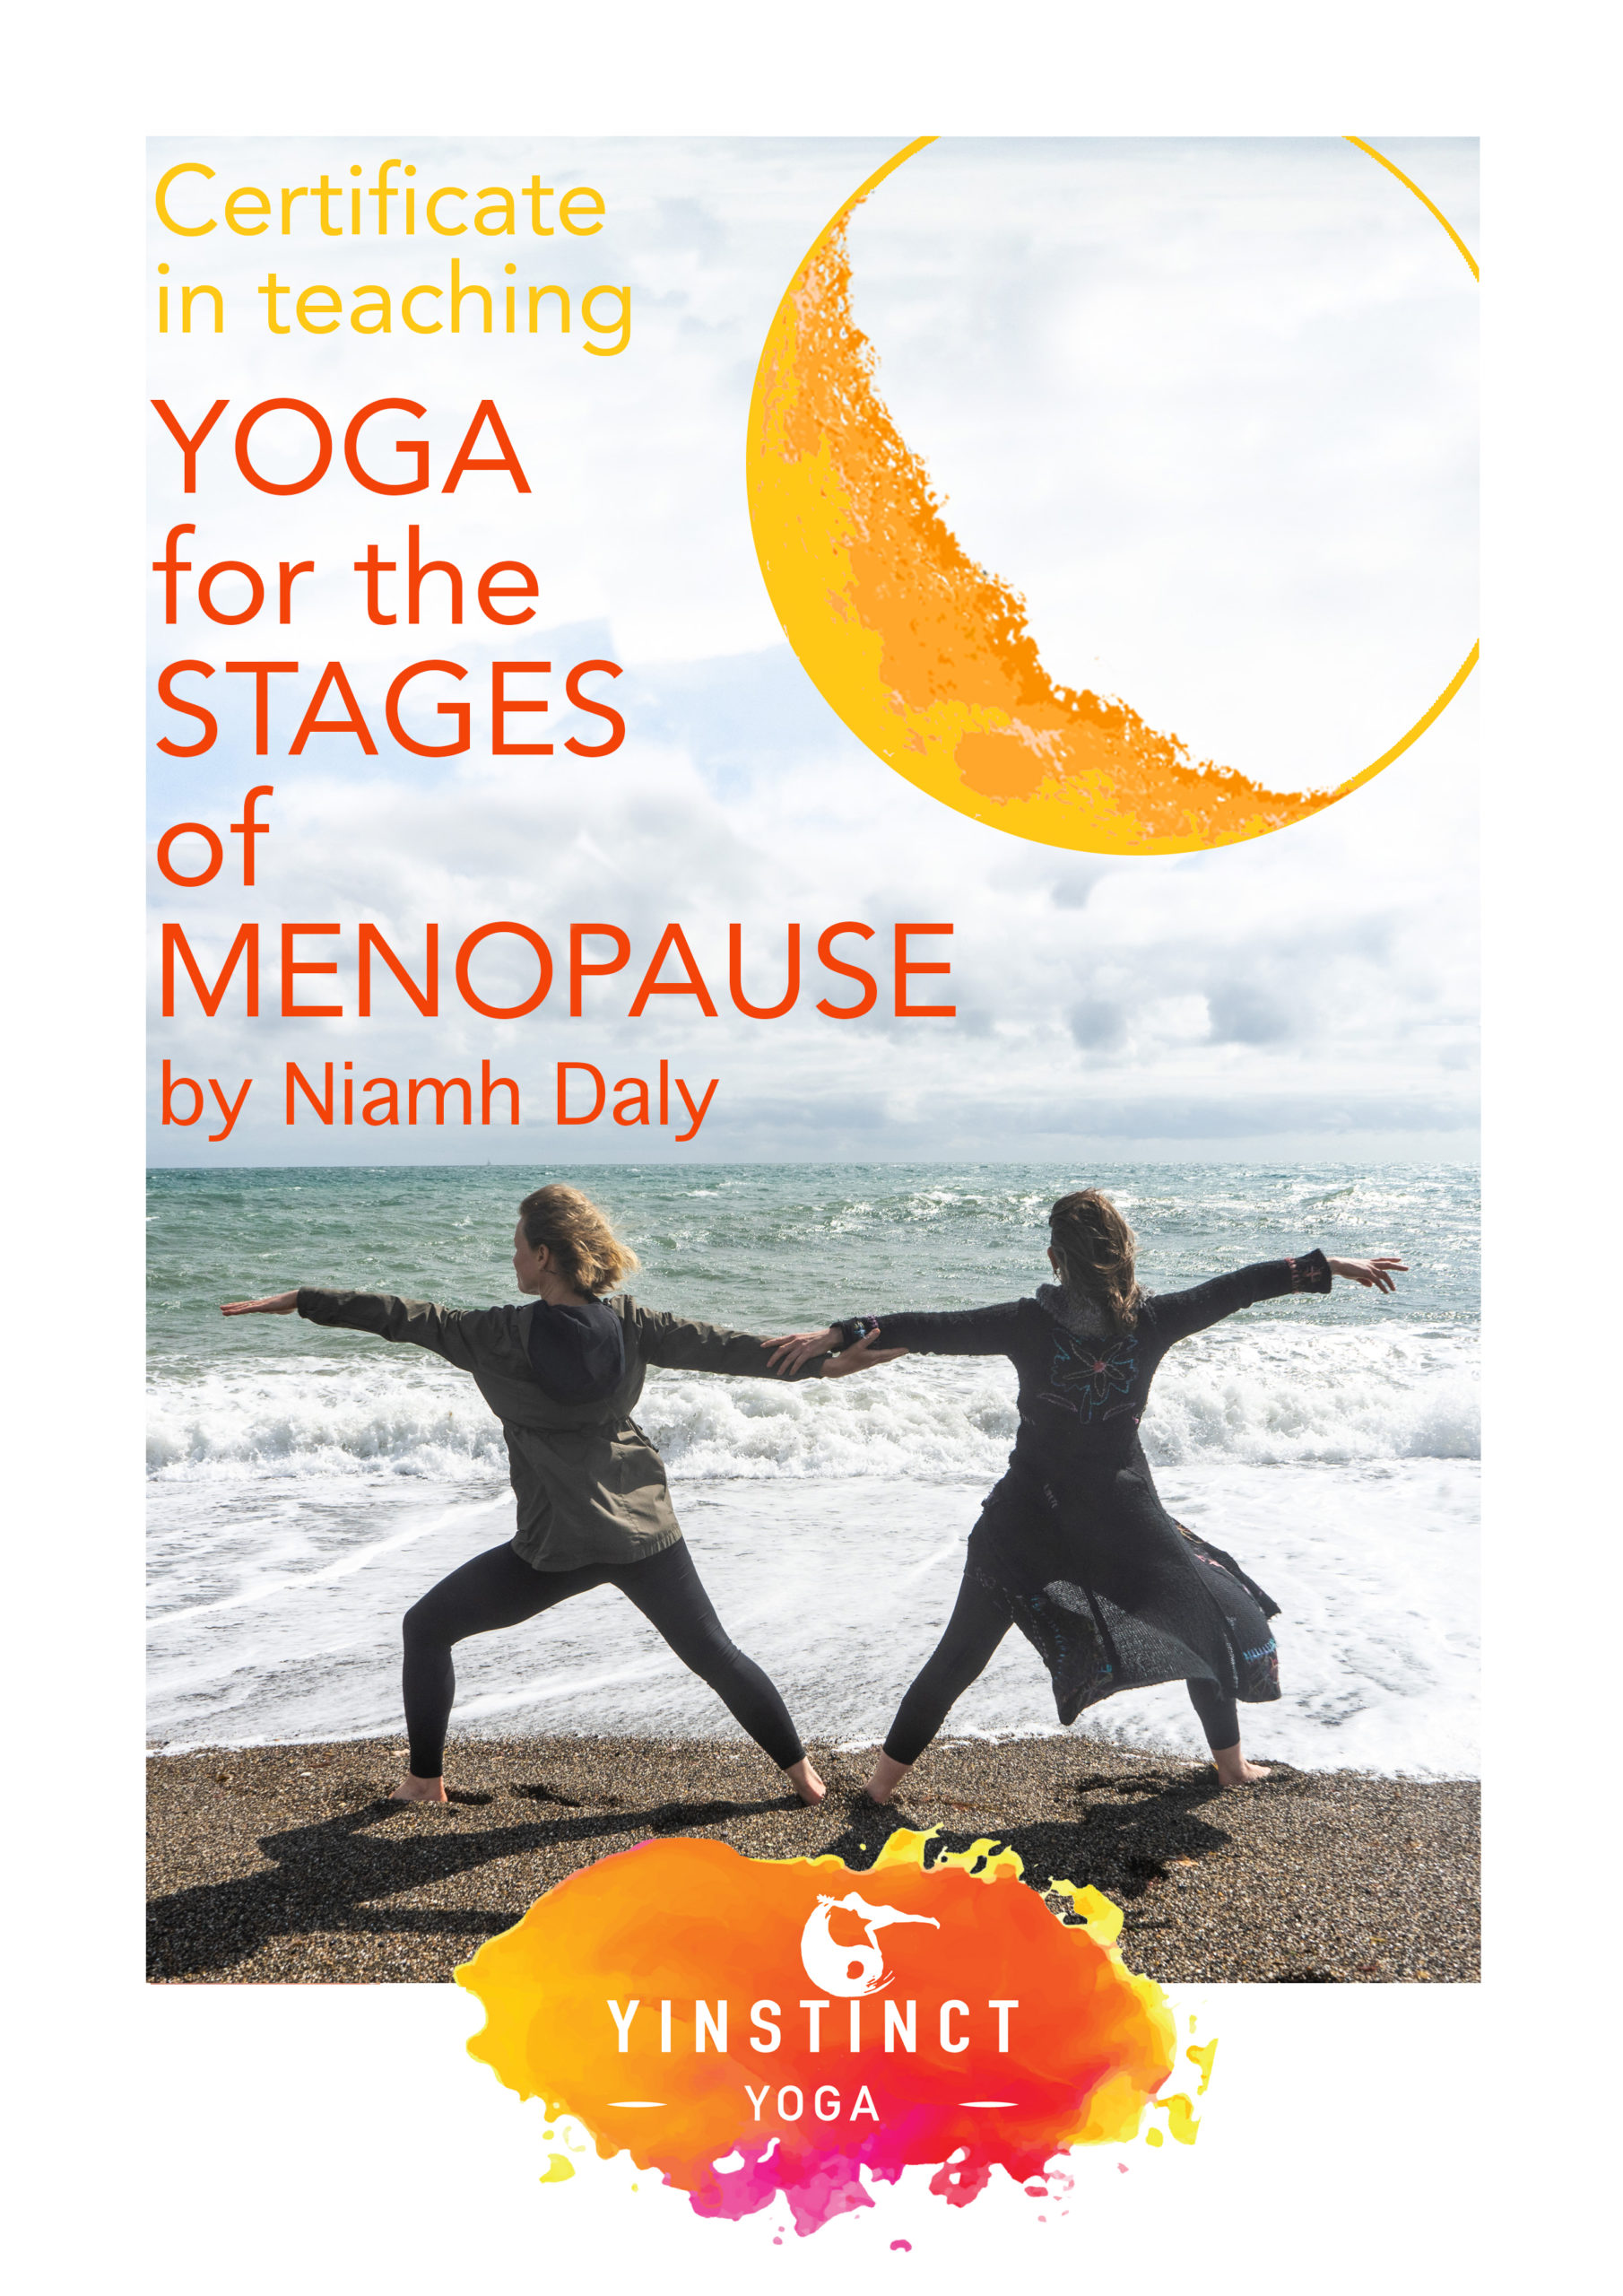 Certificate in Teaching Yoga for the Stages of Menopause, Cork, Ireland